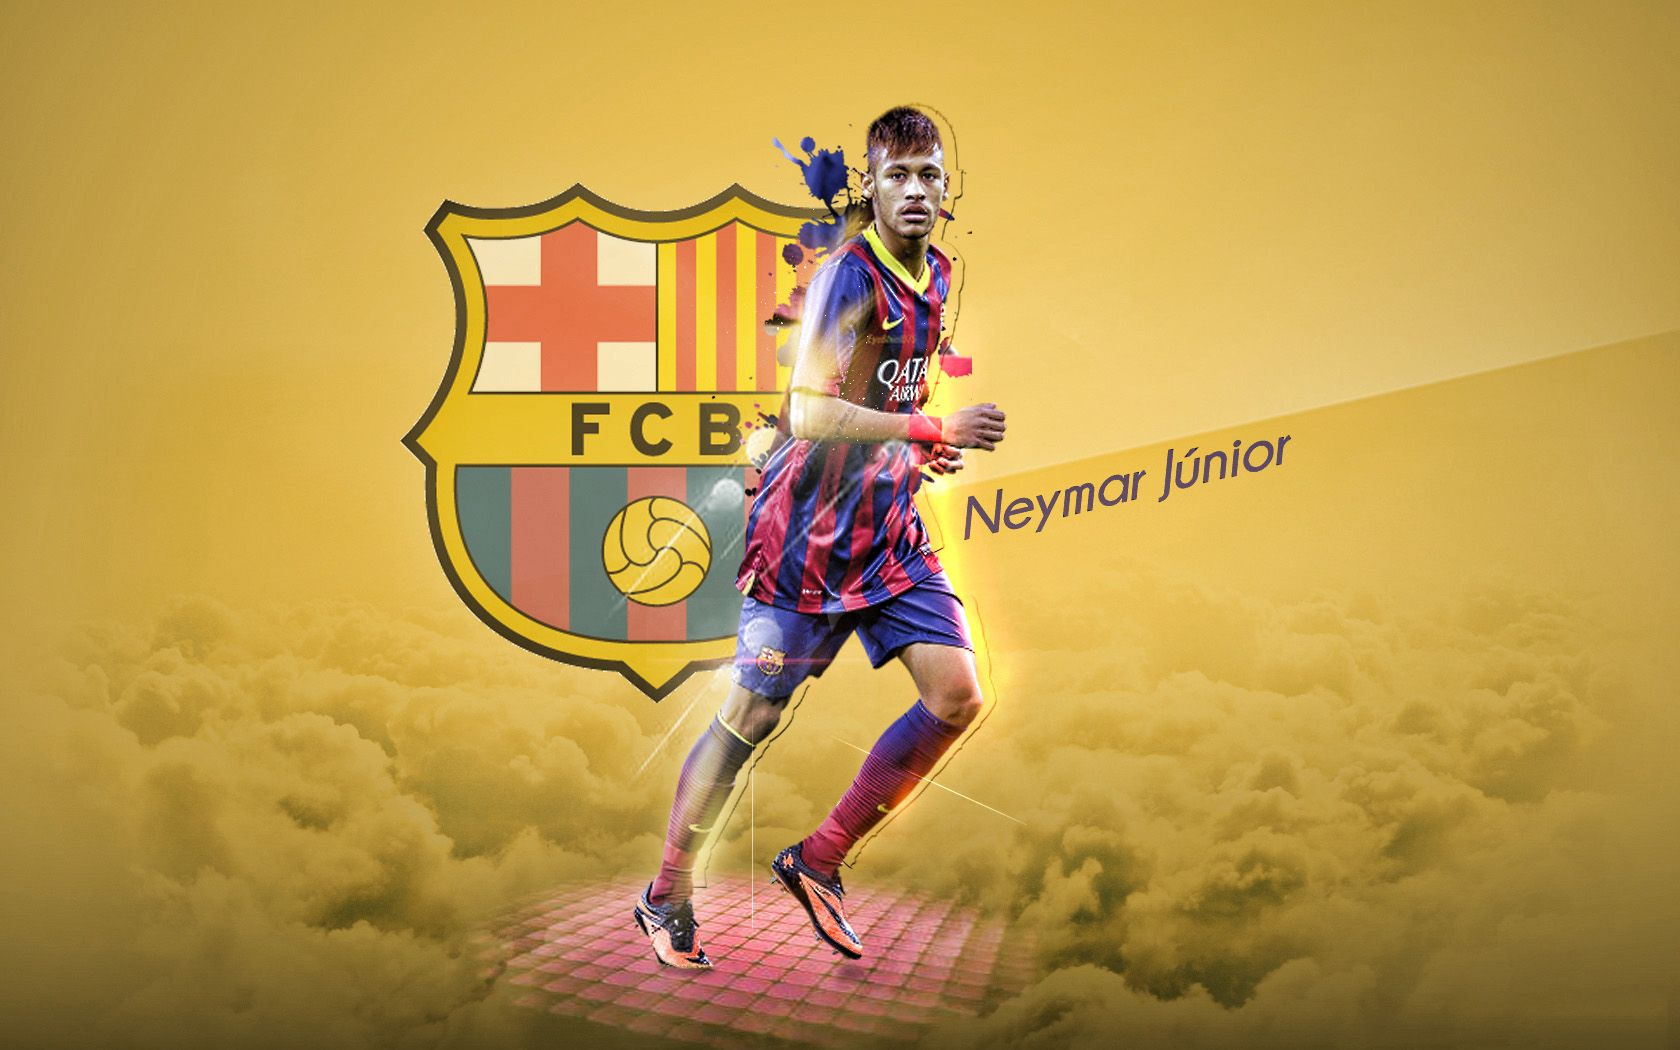 neymar brazil hd wallpapers 7 | neymar brazil hd wallpapers